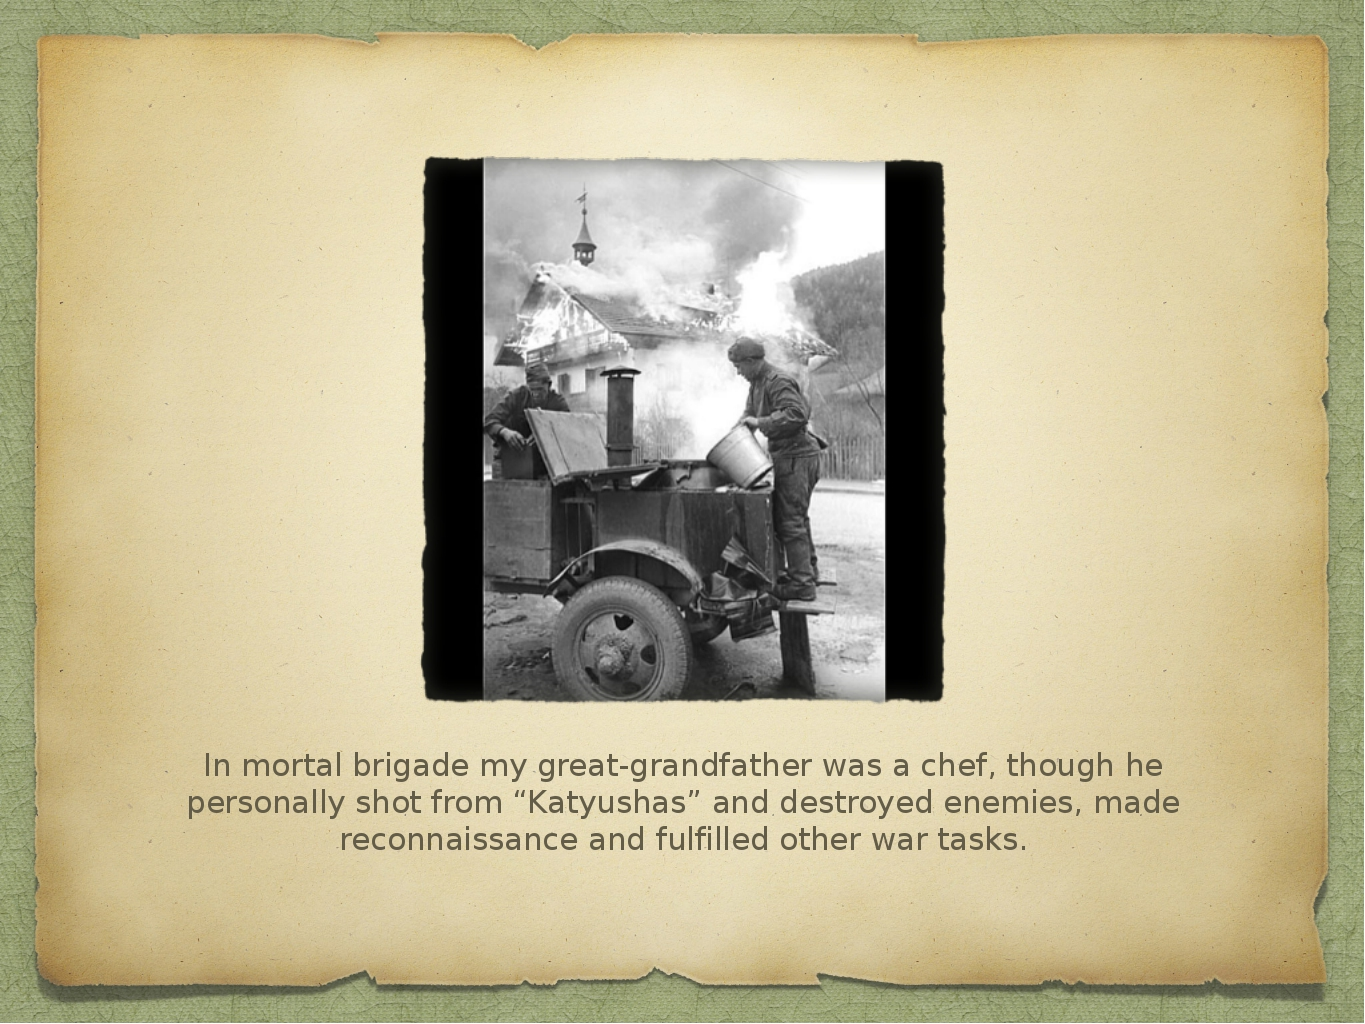 In mortal brigade my great-grandfather was a chef, though he personally shot...